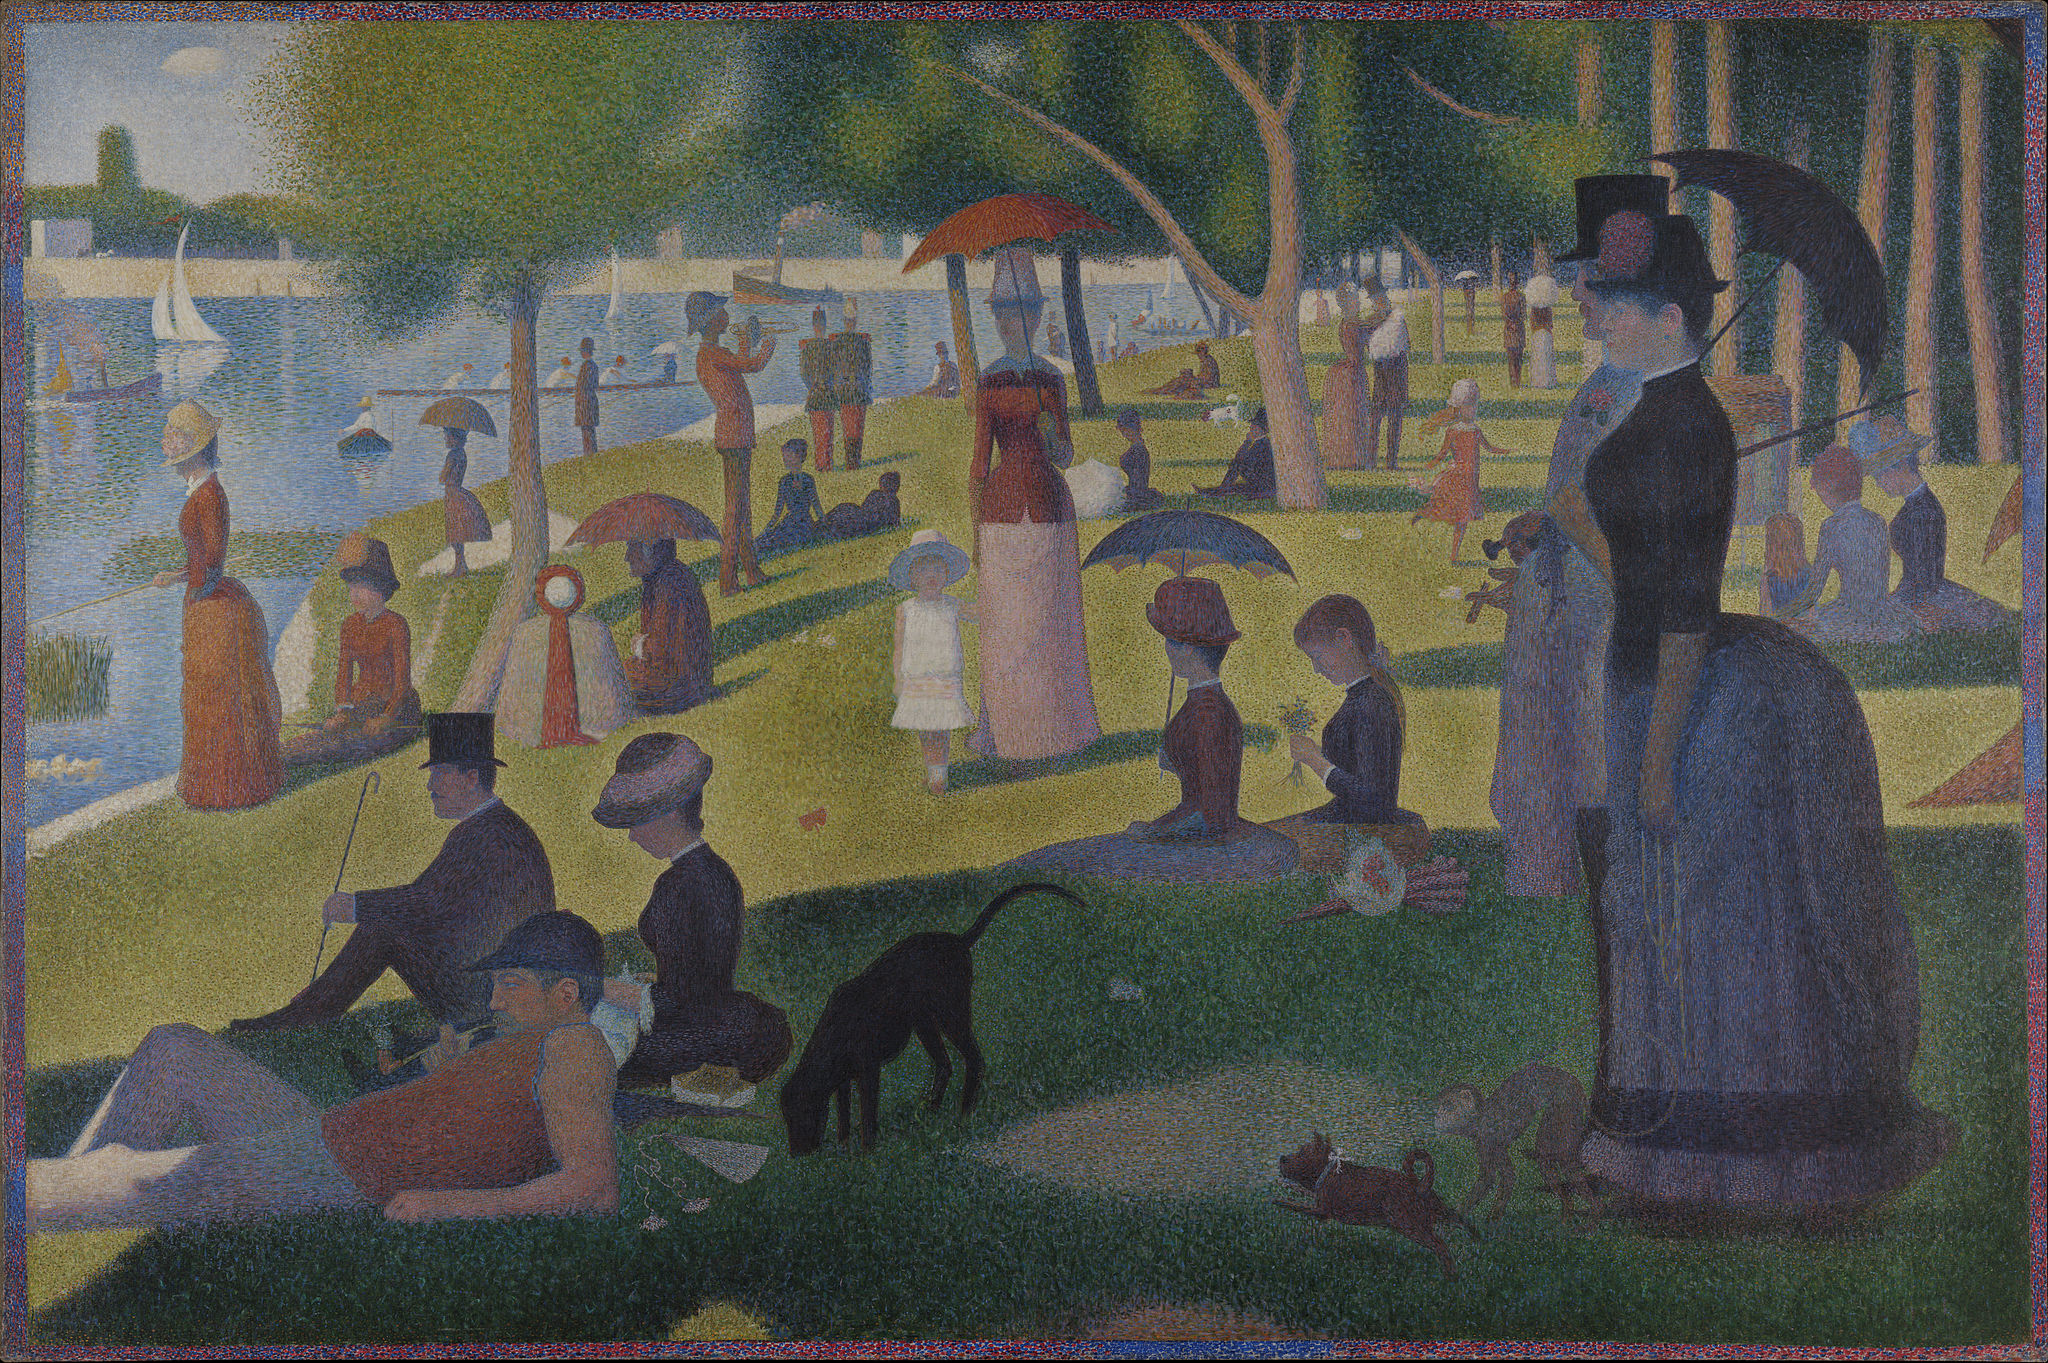 Georges Seurat [Public domain], via Wikimedia Commons